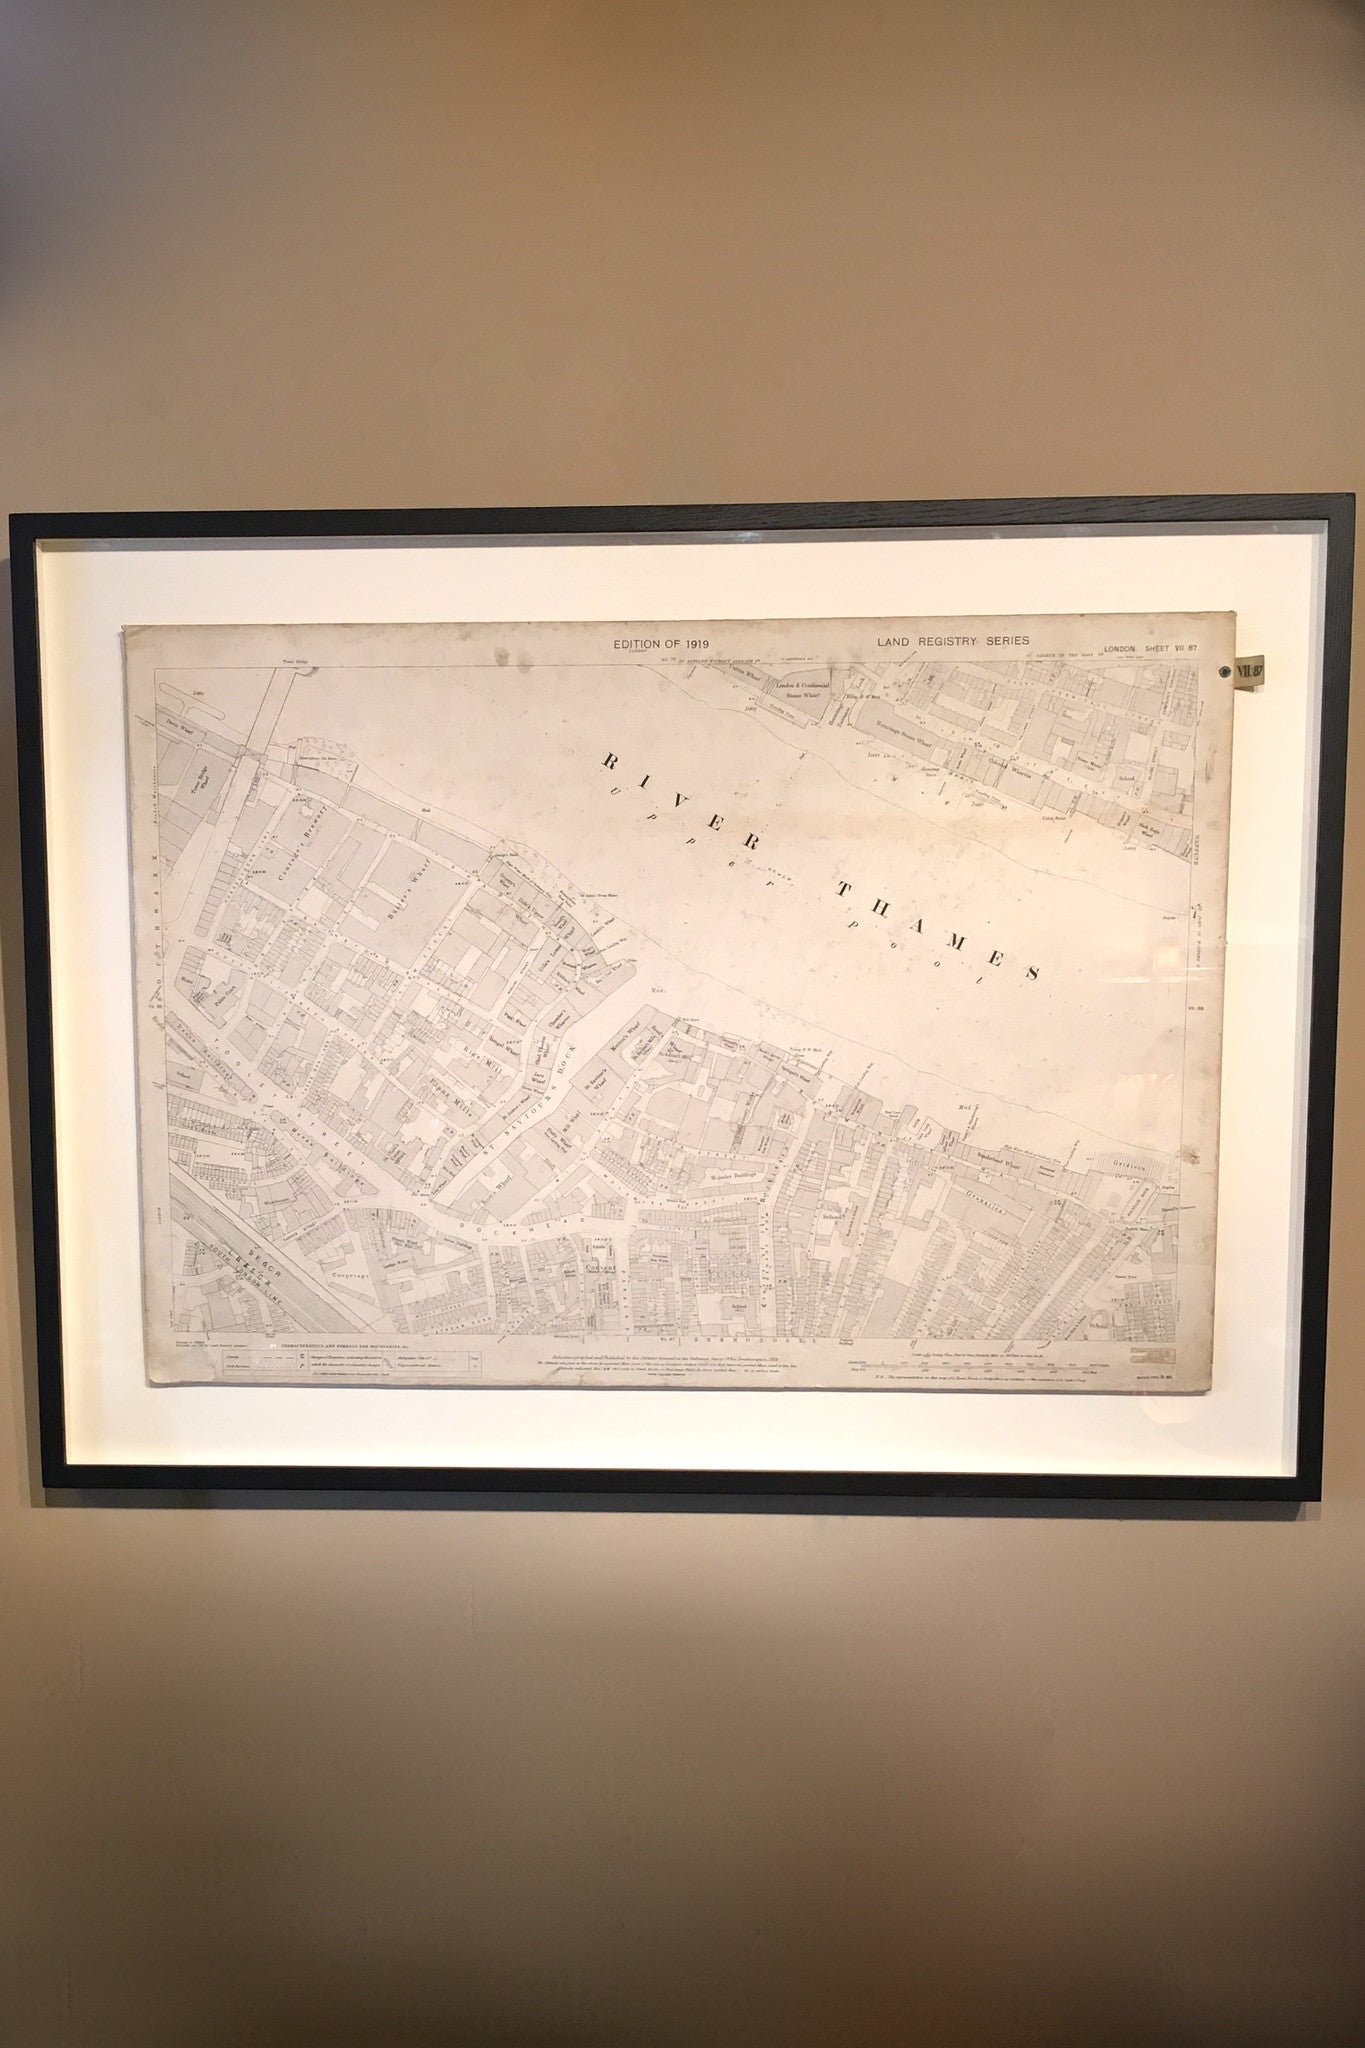 X Framed original 1919 land registry Map of Tower Bridge and the surrounding area.